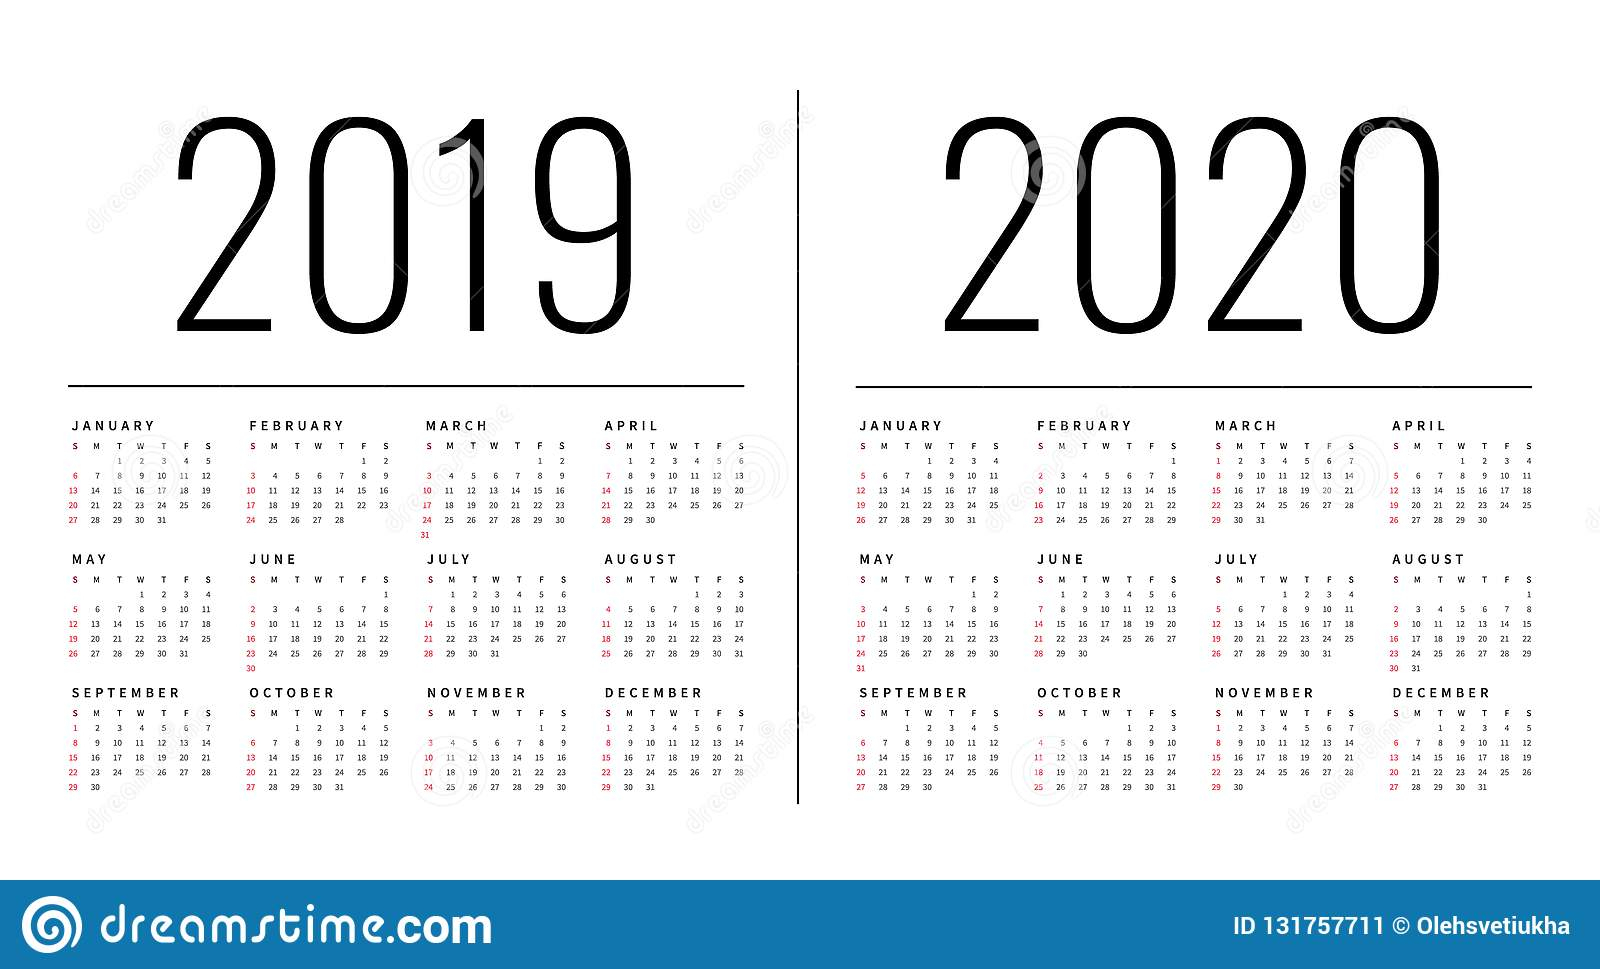 Mockup Simple Calendar Layout For 2019 And 2020 Years. Week Starts pertaining to 2020 Calendar Starting On Monday